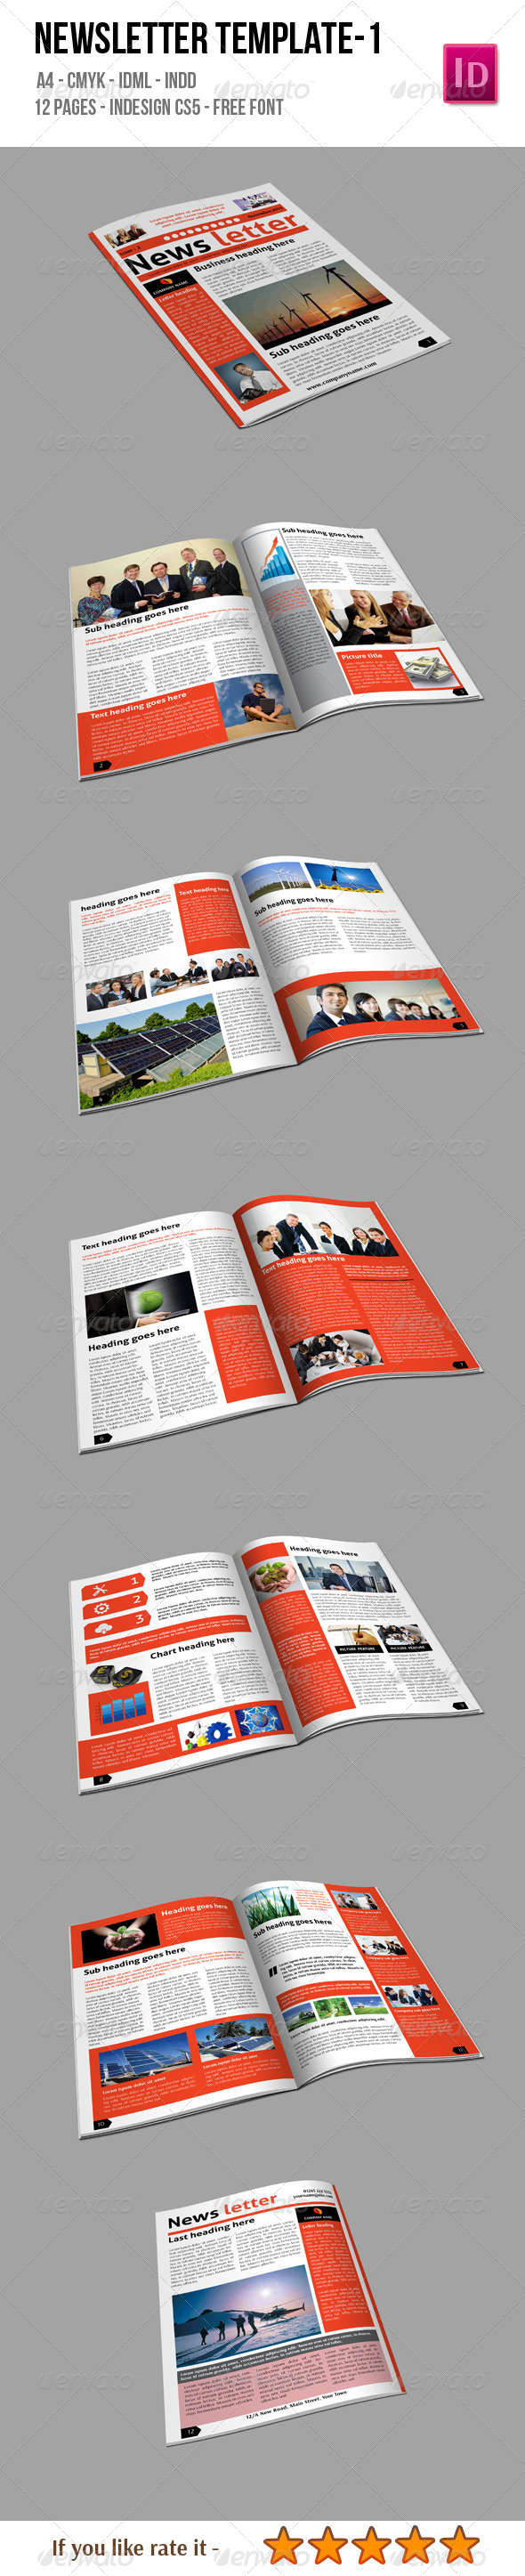 GraphicRiver Newsletter Template 1 6502896